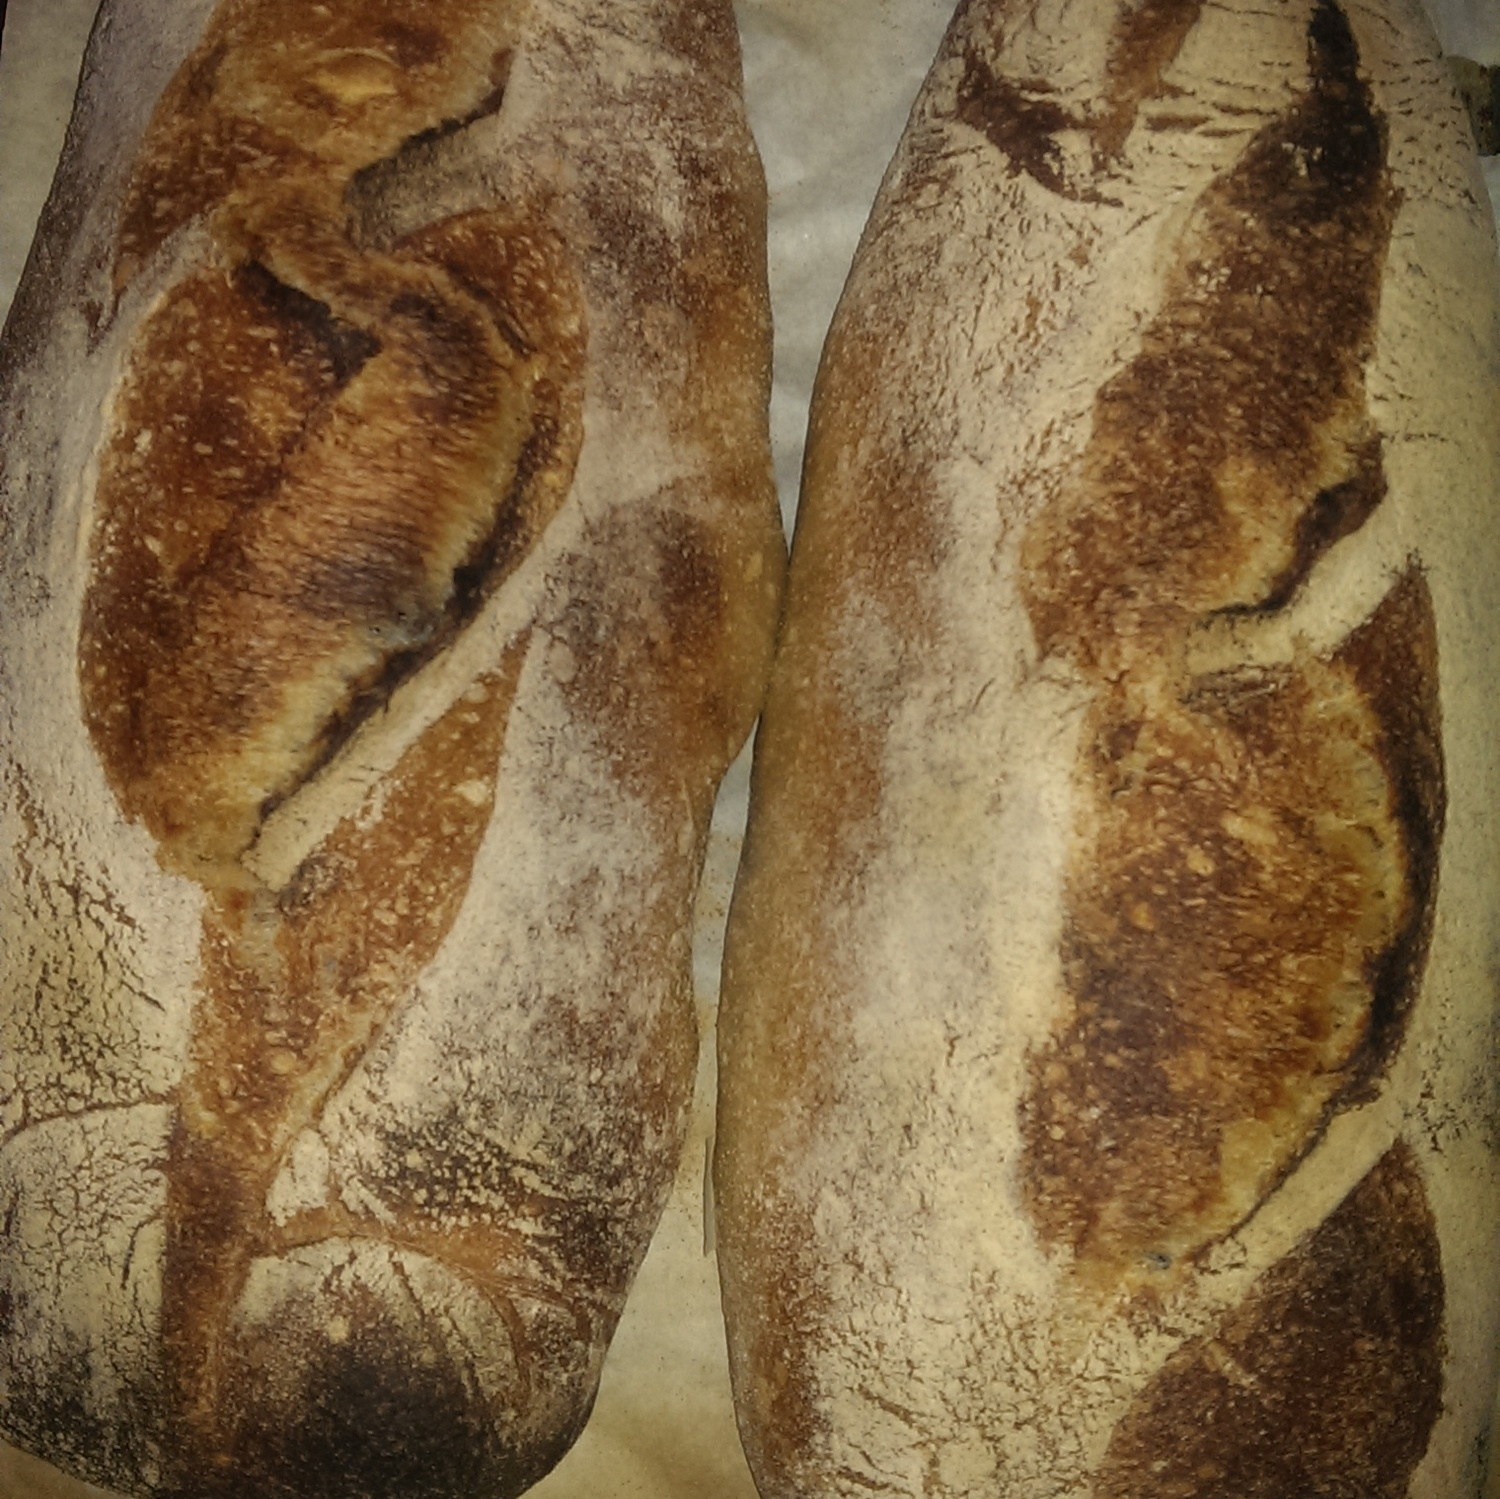 The whole point: Delicious and nutritious daily bread